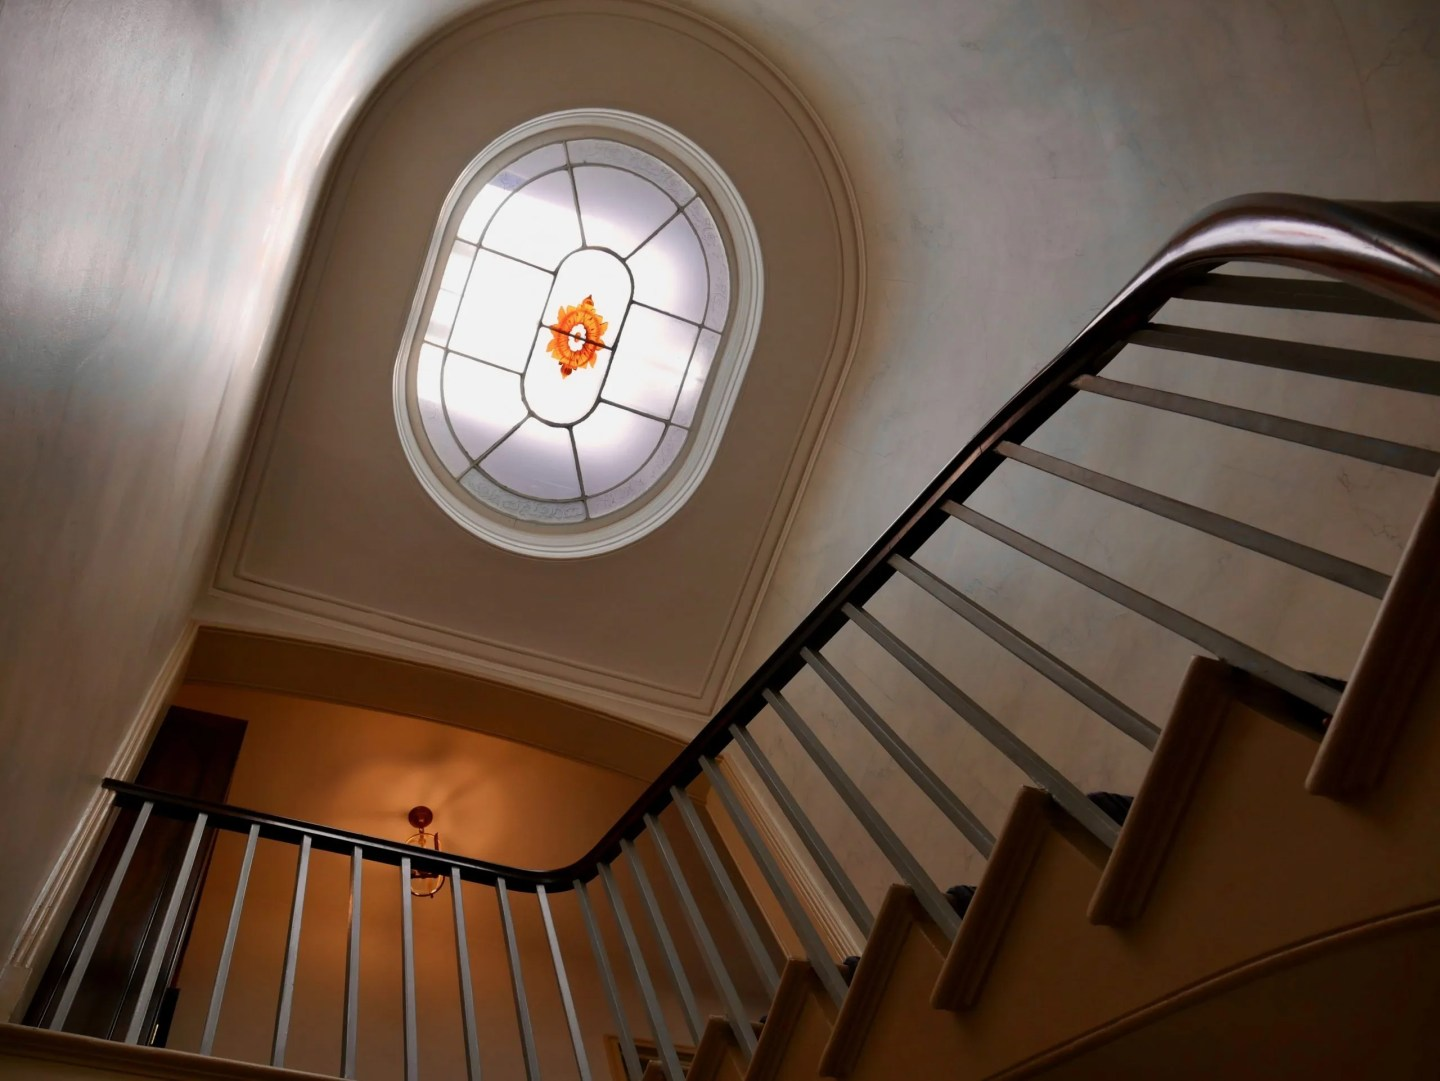 Turner's House stair lantern